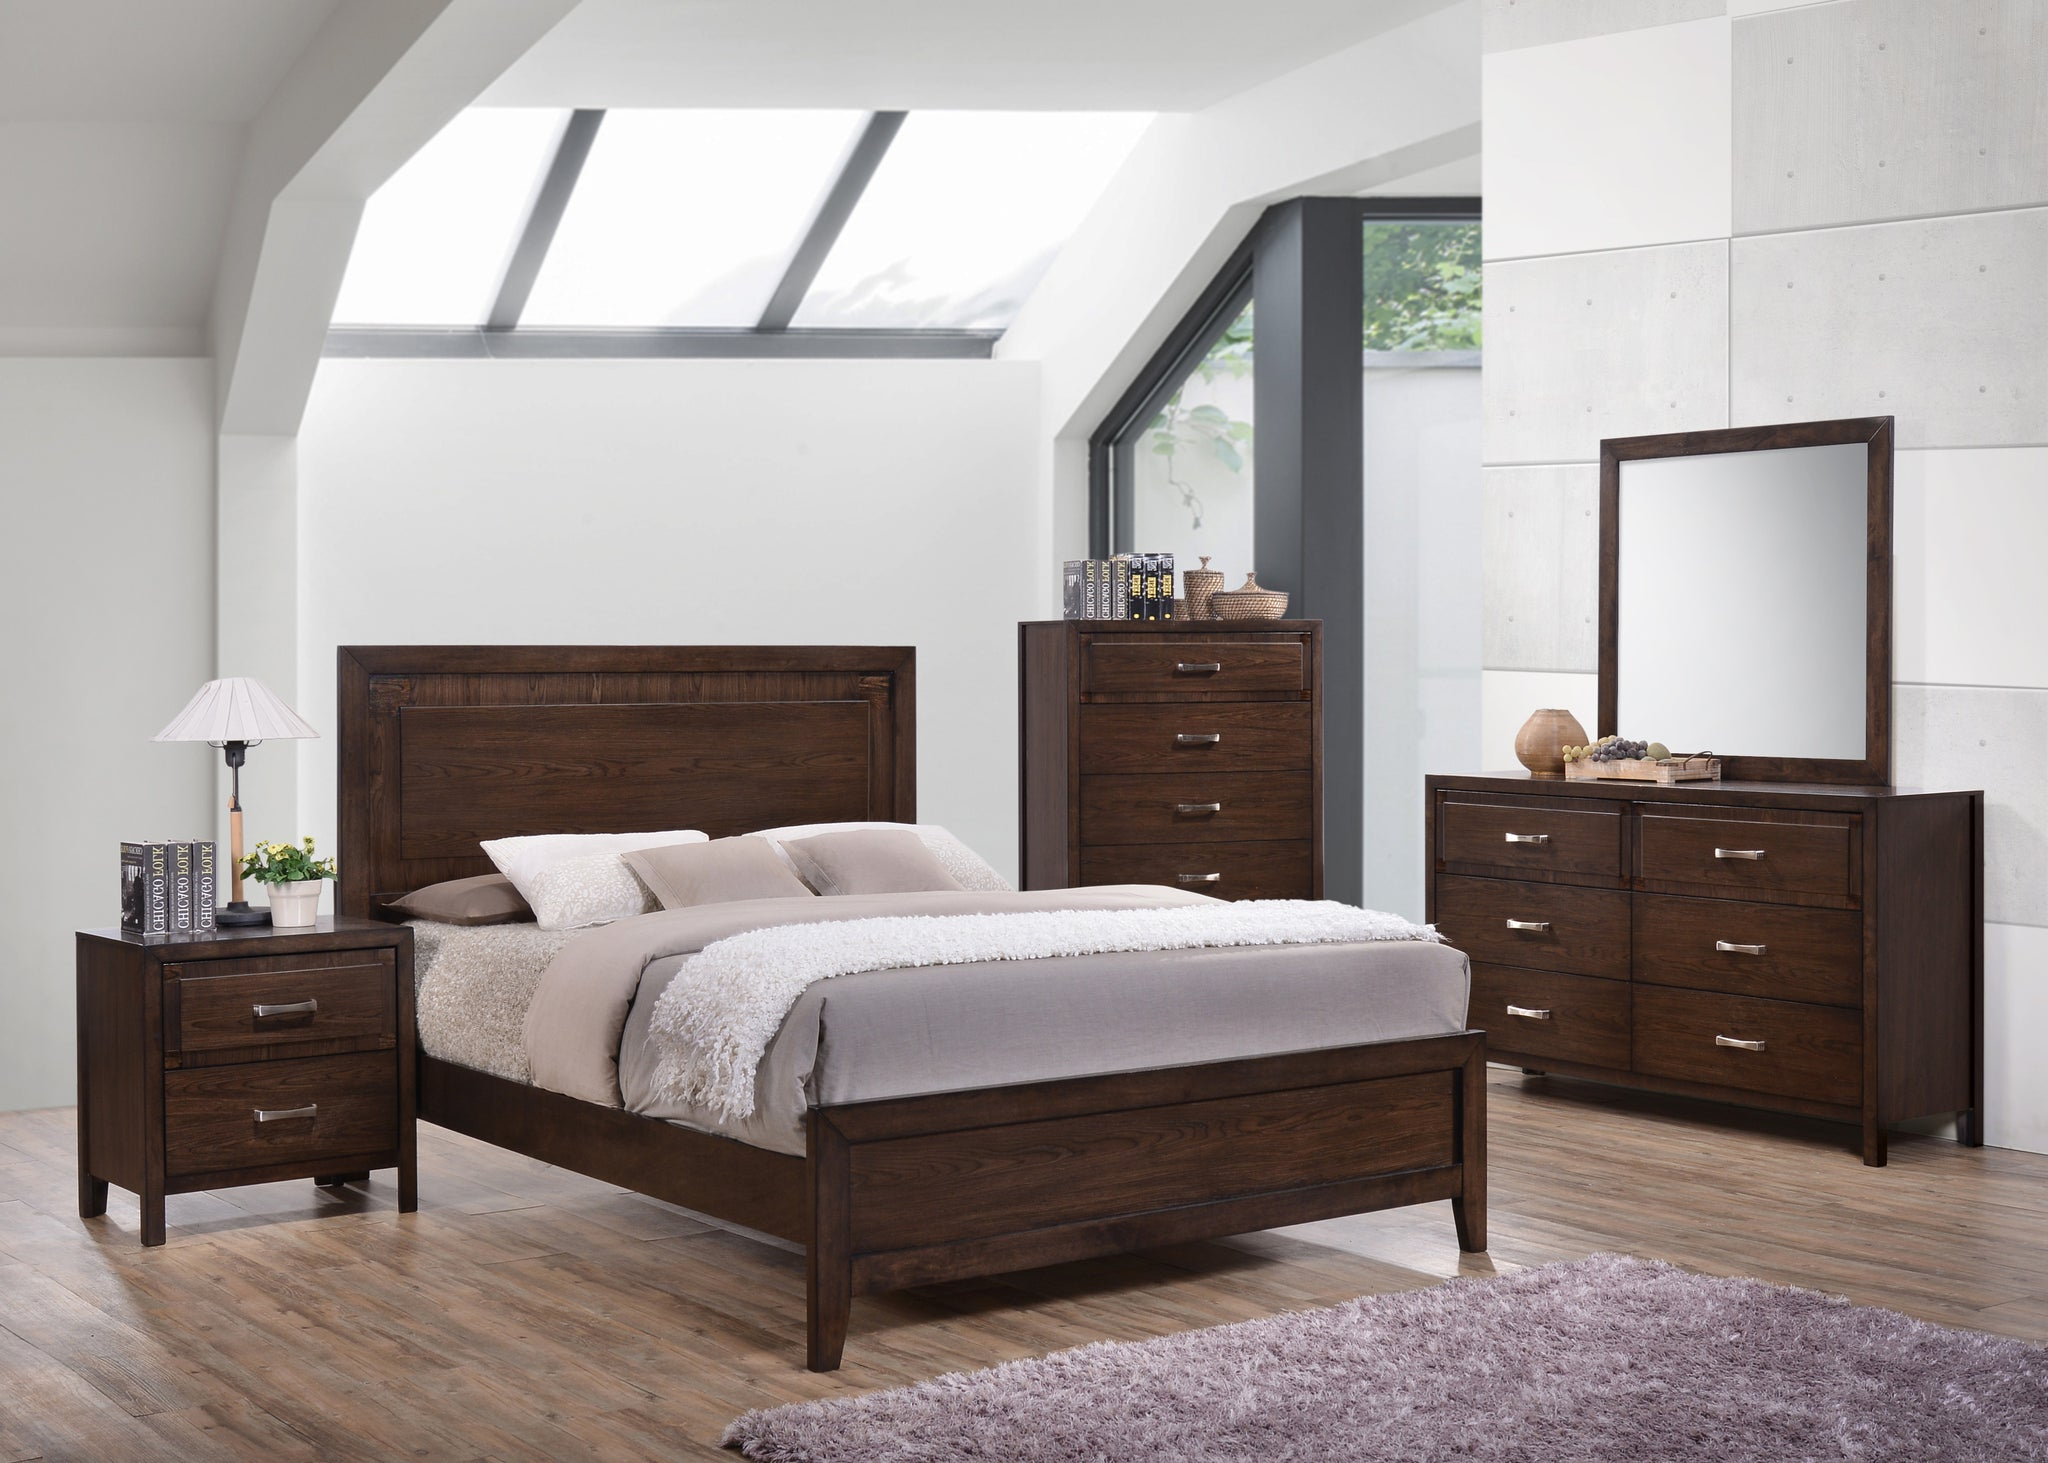 Cappuccino wood queen size contemporary configurable - Contemporary king size bedroom furniture ...